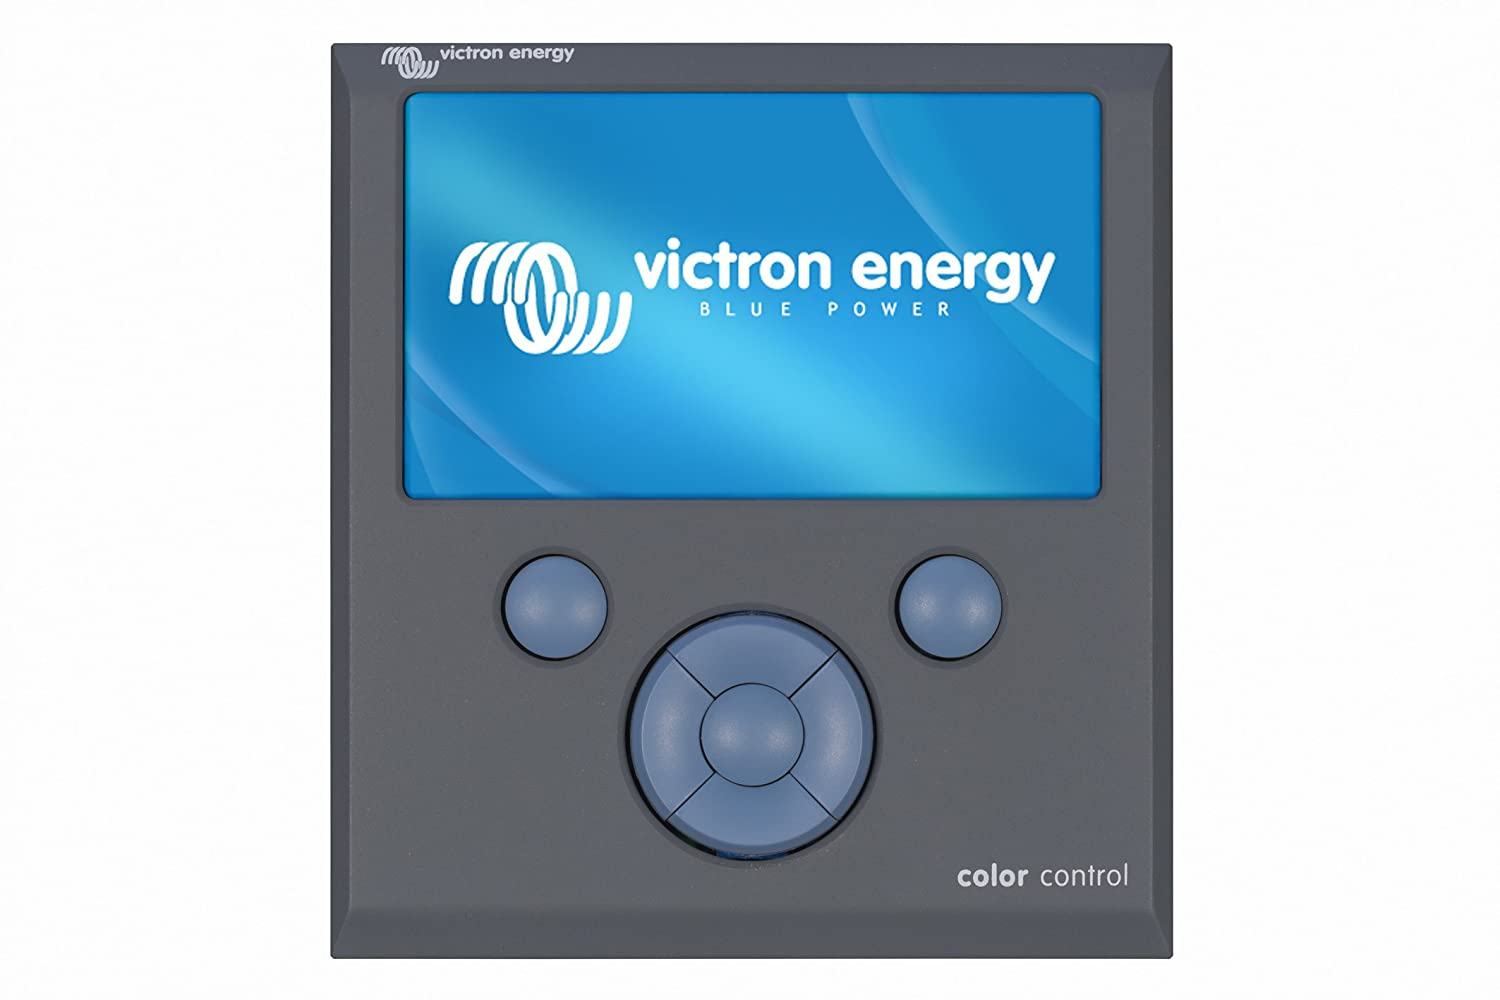 Color Control GX – Victron Energy The hub of our bus' electrical system – connects to the inverter and logs all our data to the internet, so we can review it remotely too. (Victron sent us this for beta testing and feedback.)